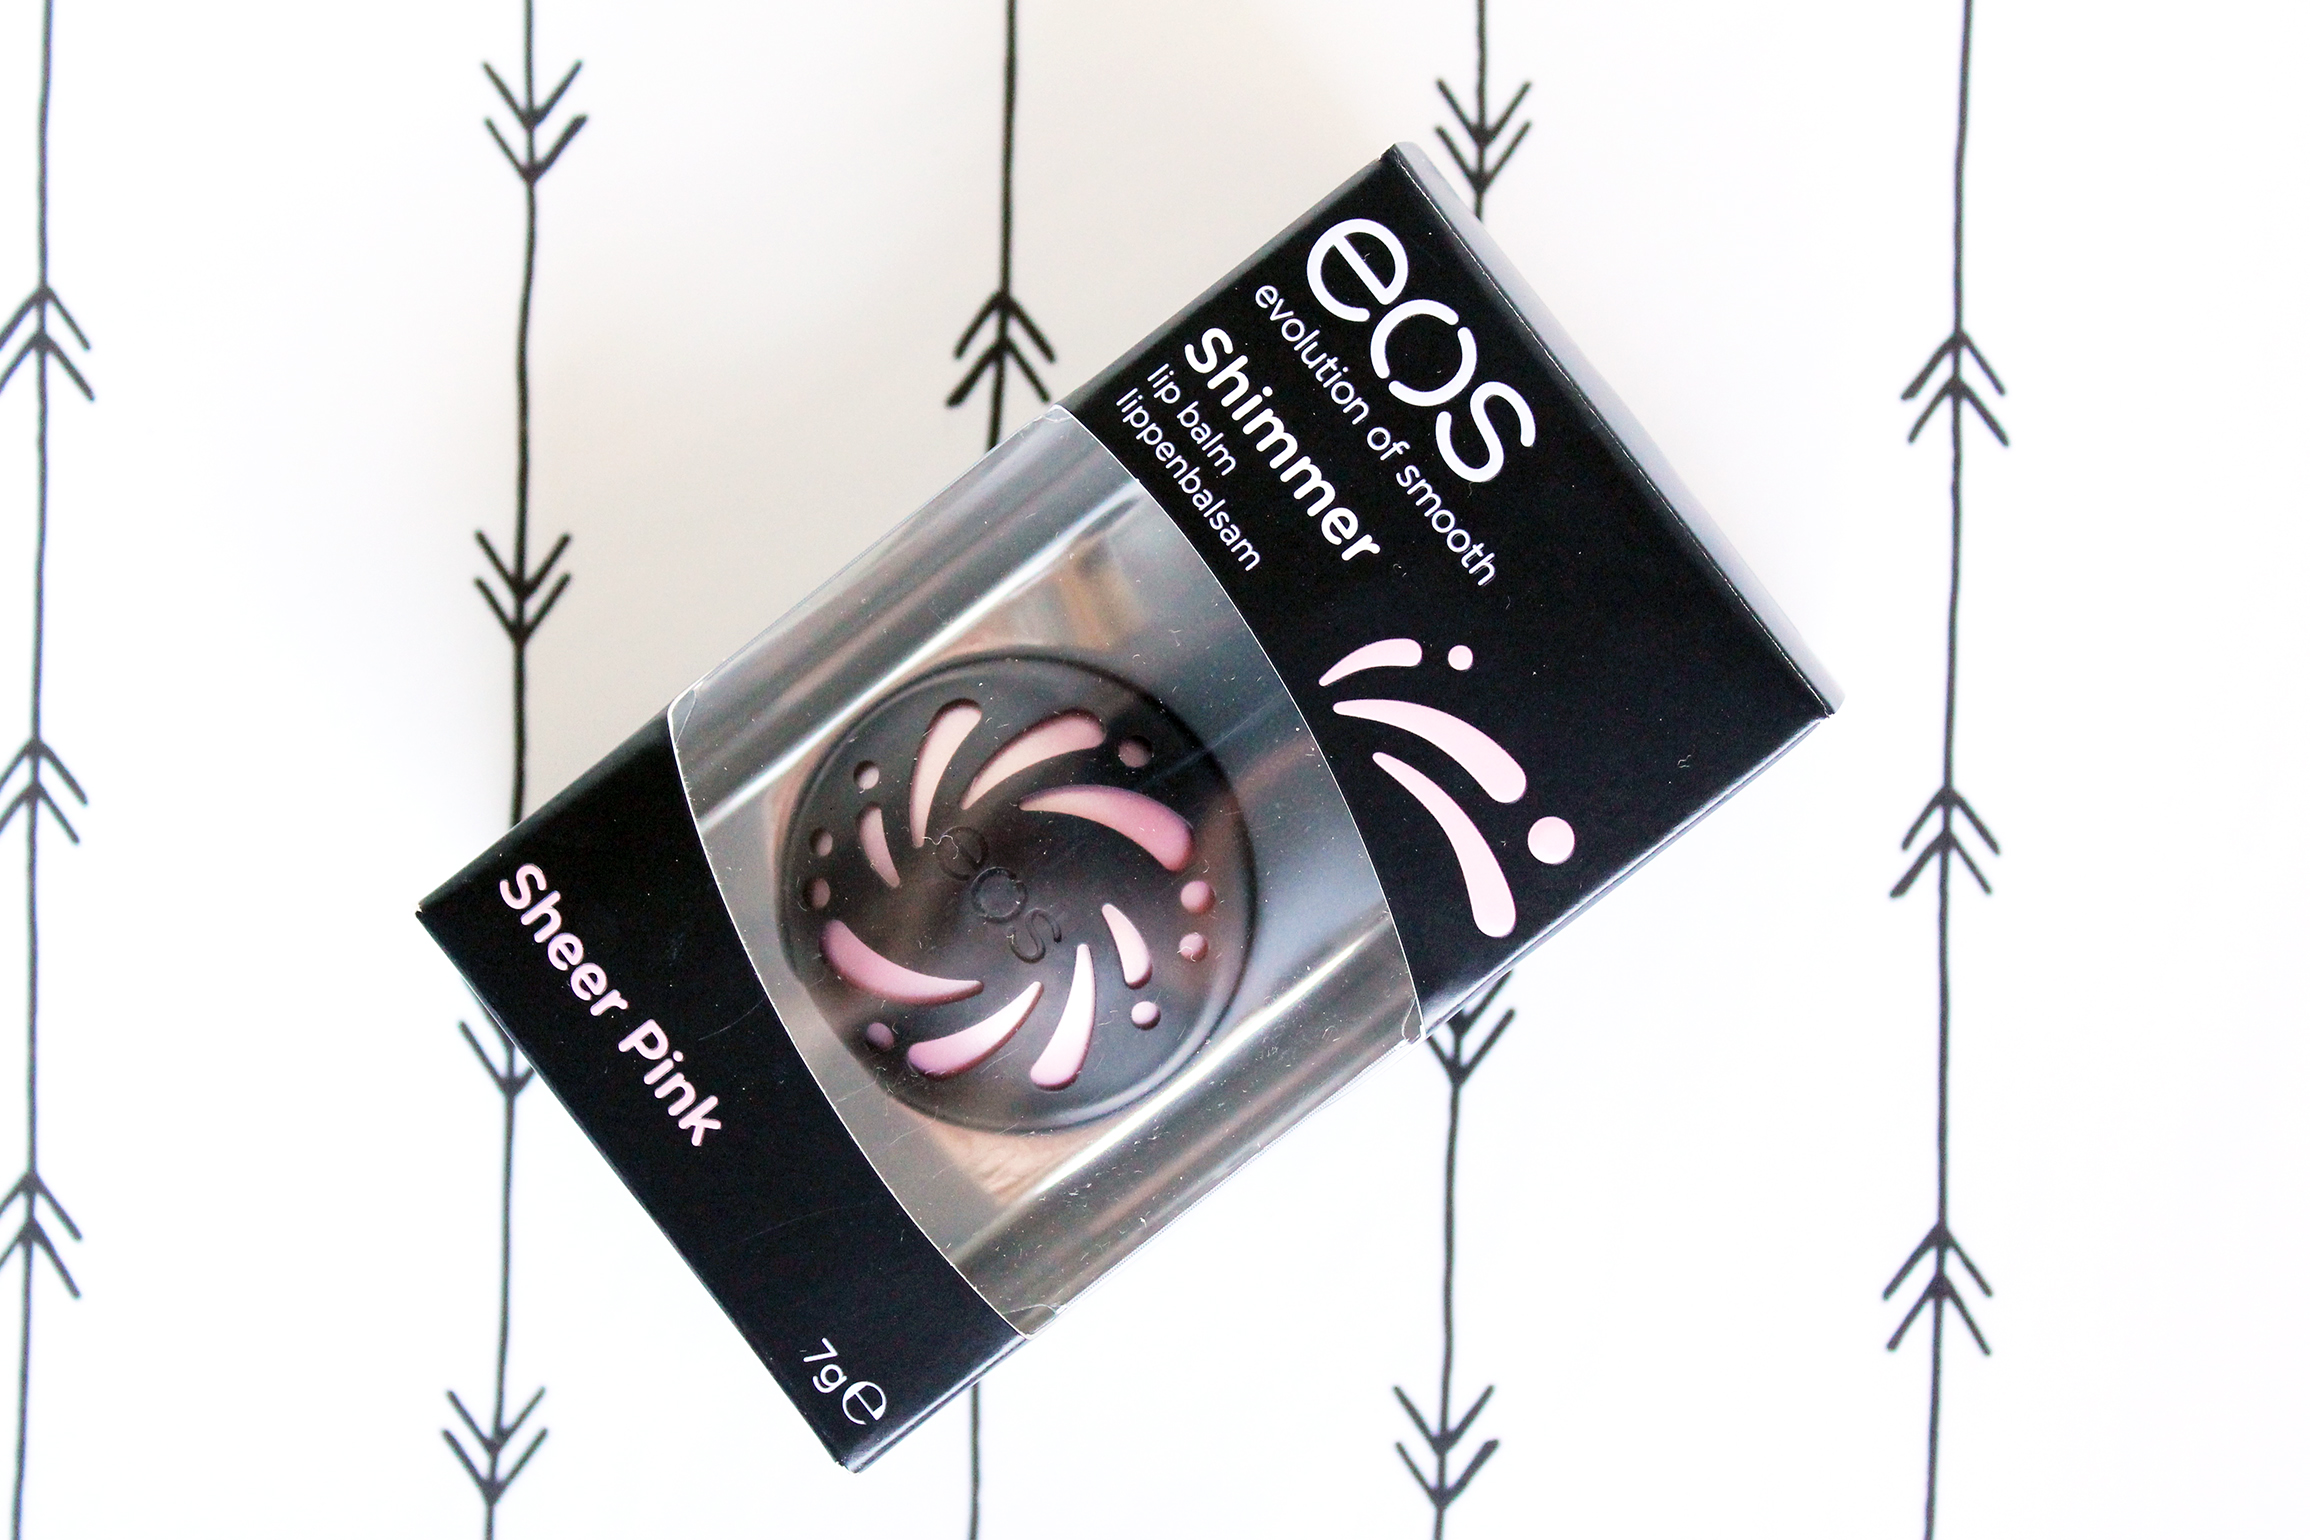 eos shimmer lip balm review